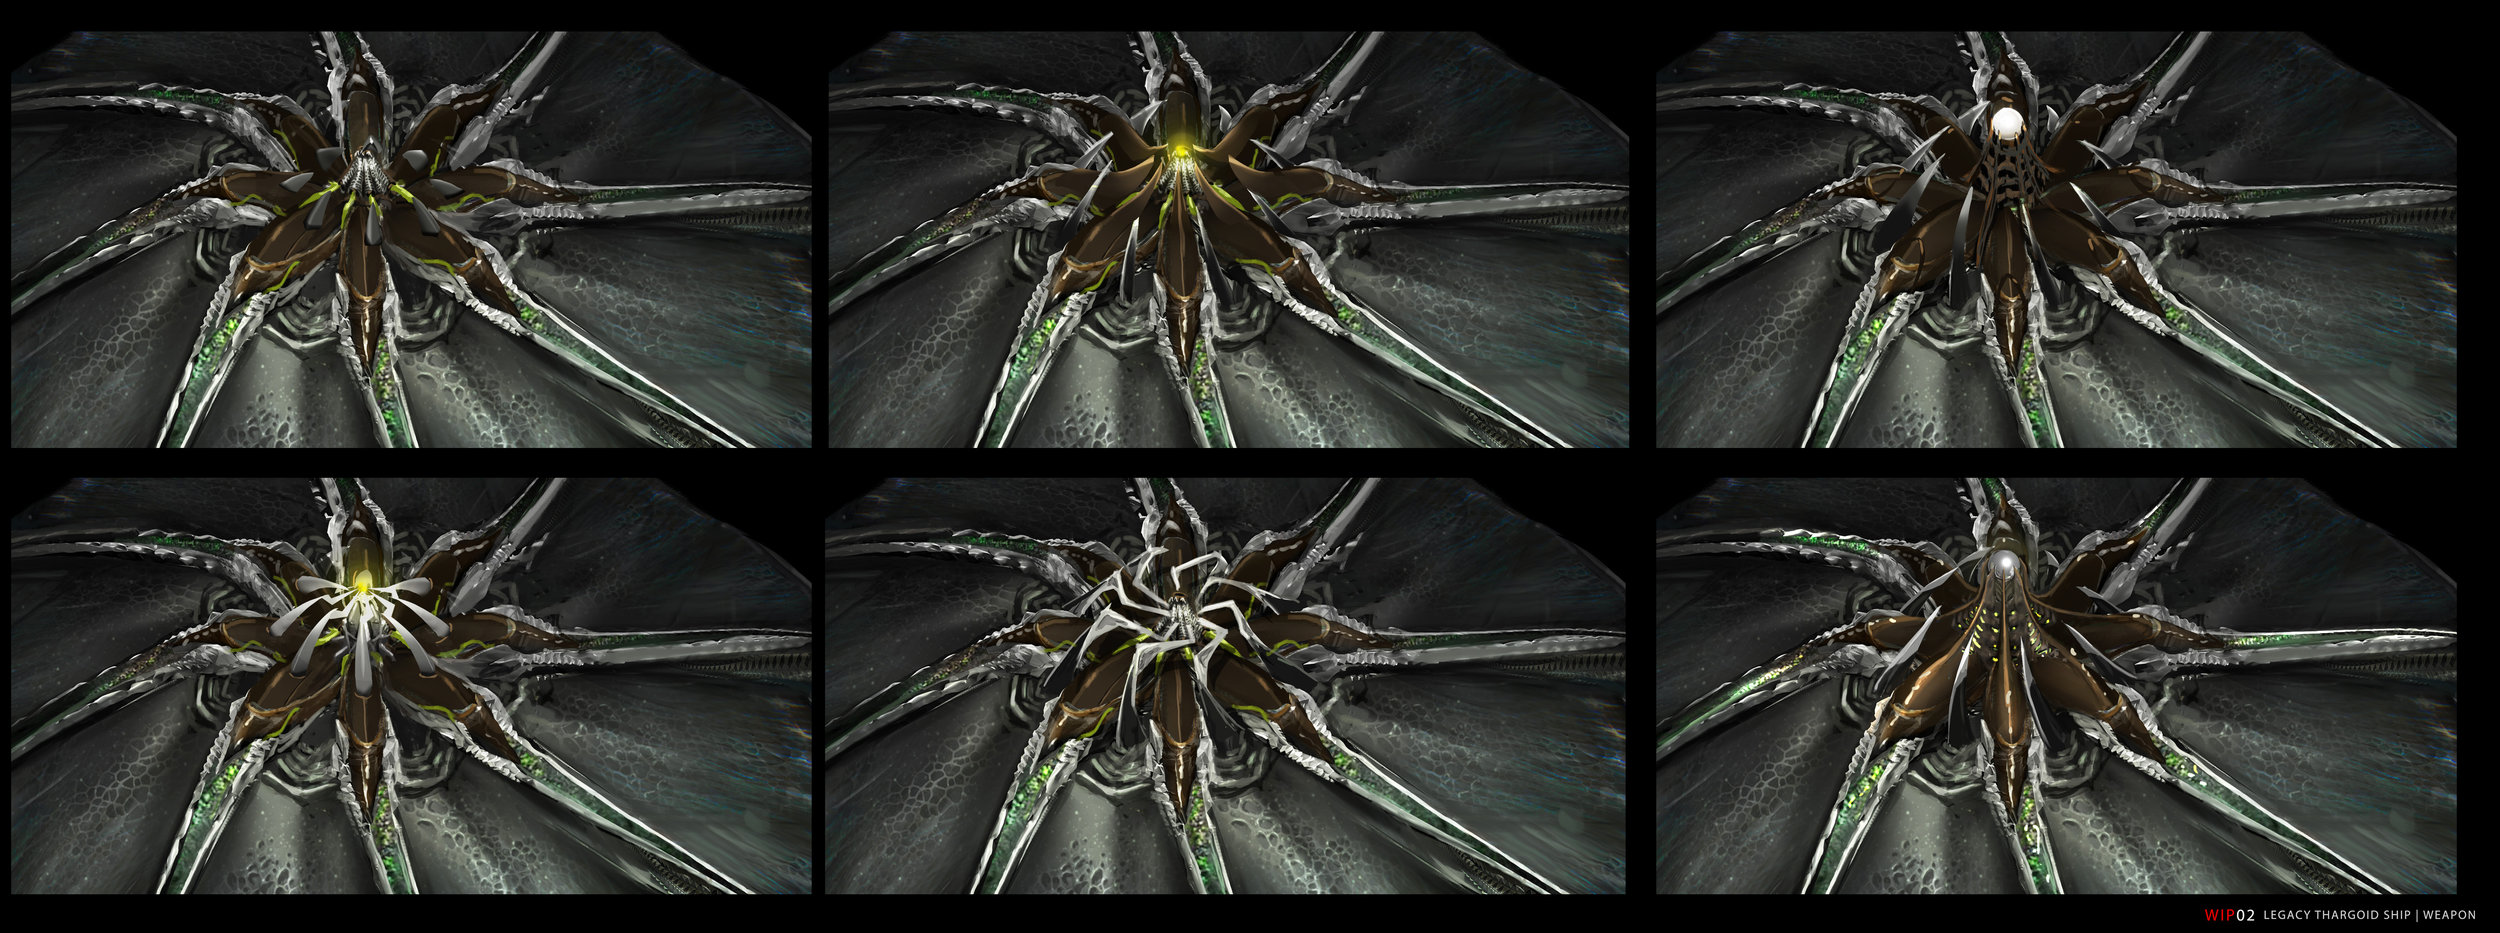 Legacy_Thargoid_Weapons_03.jpg